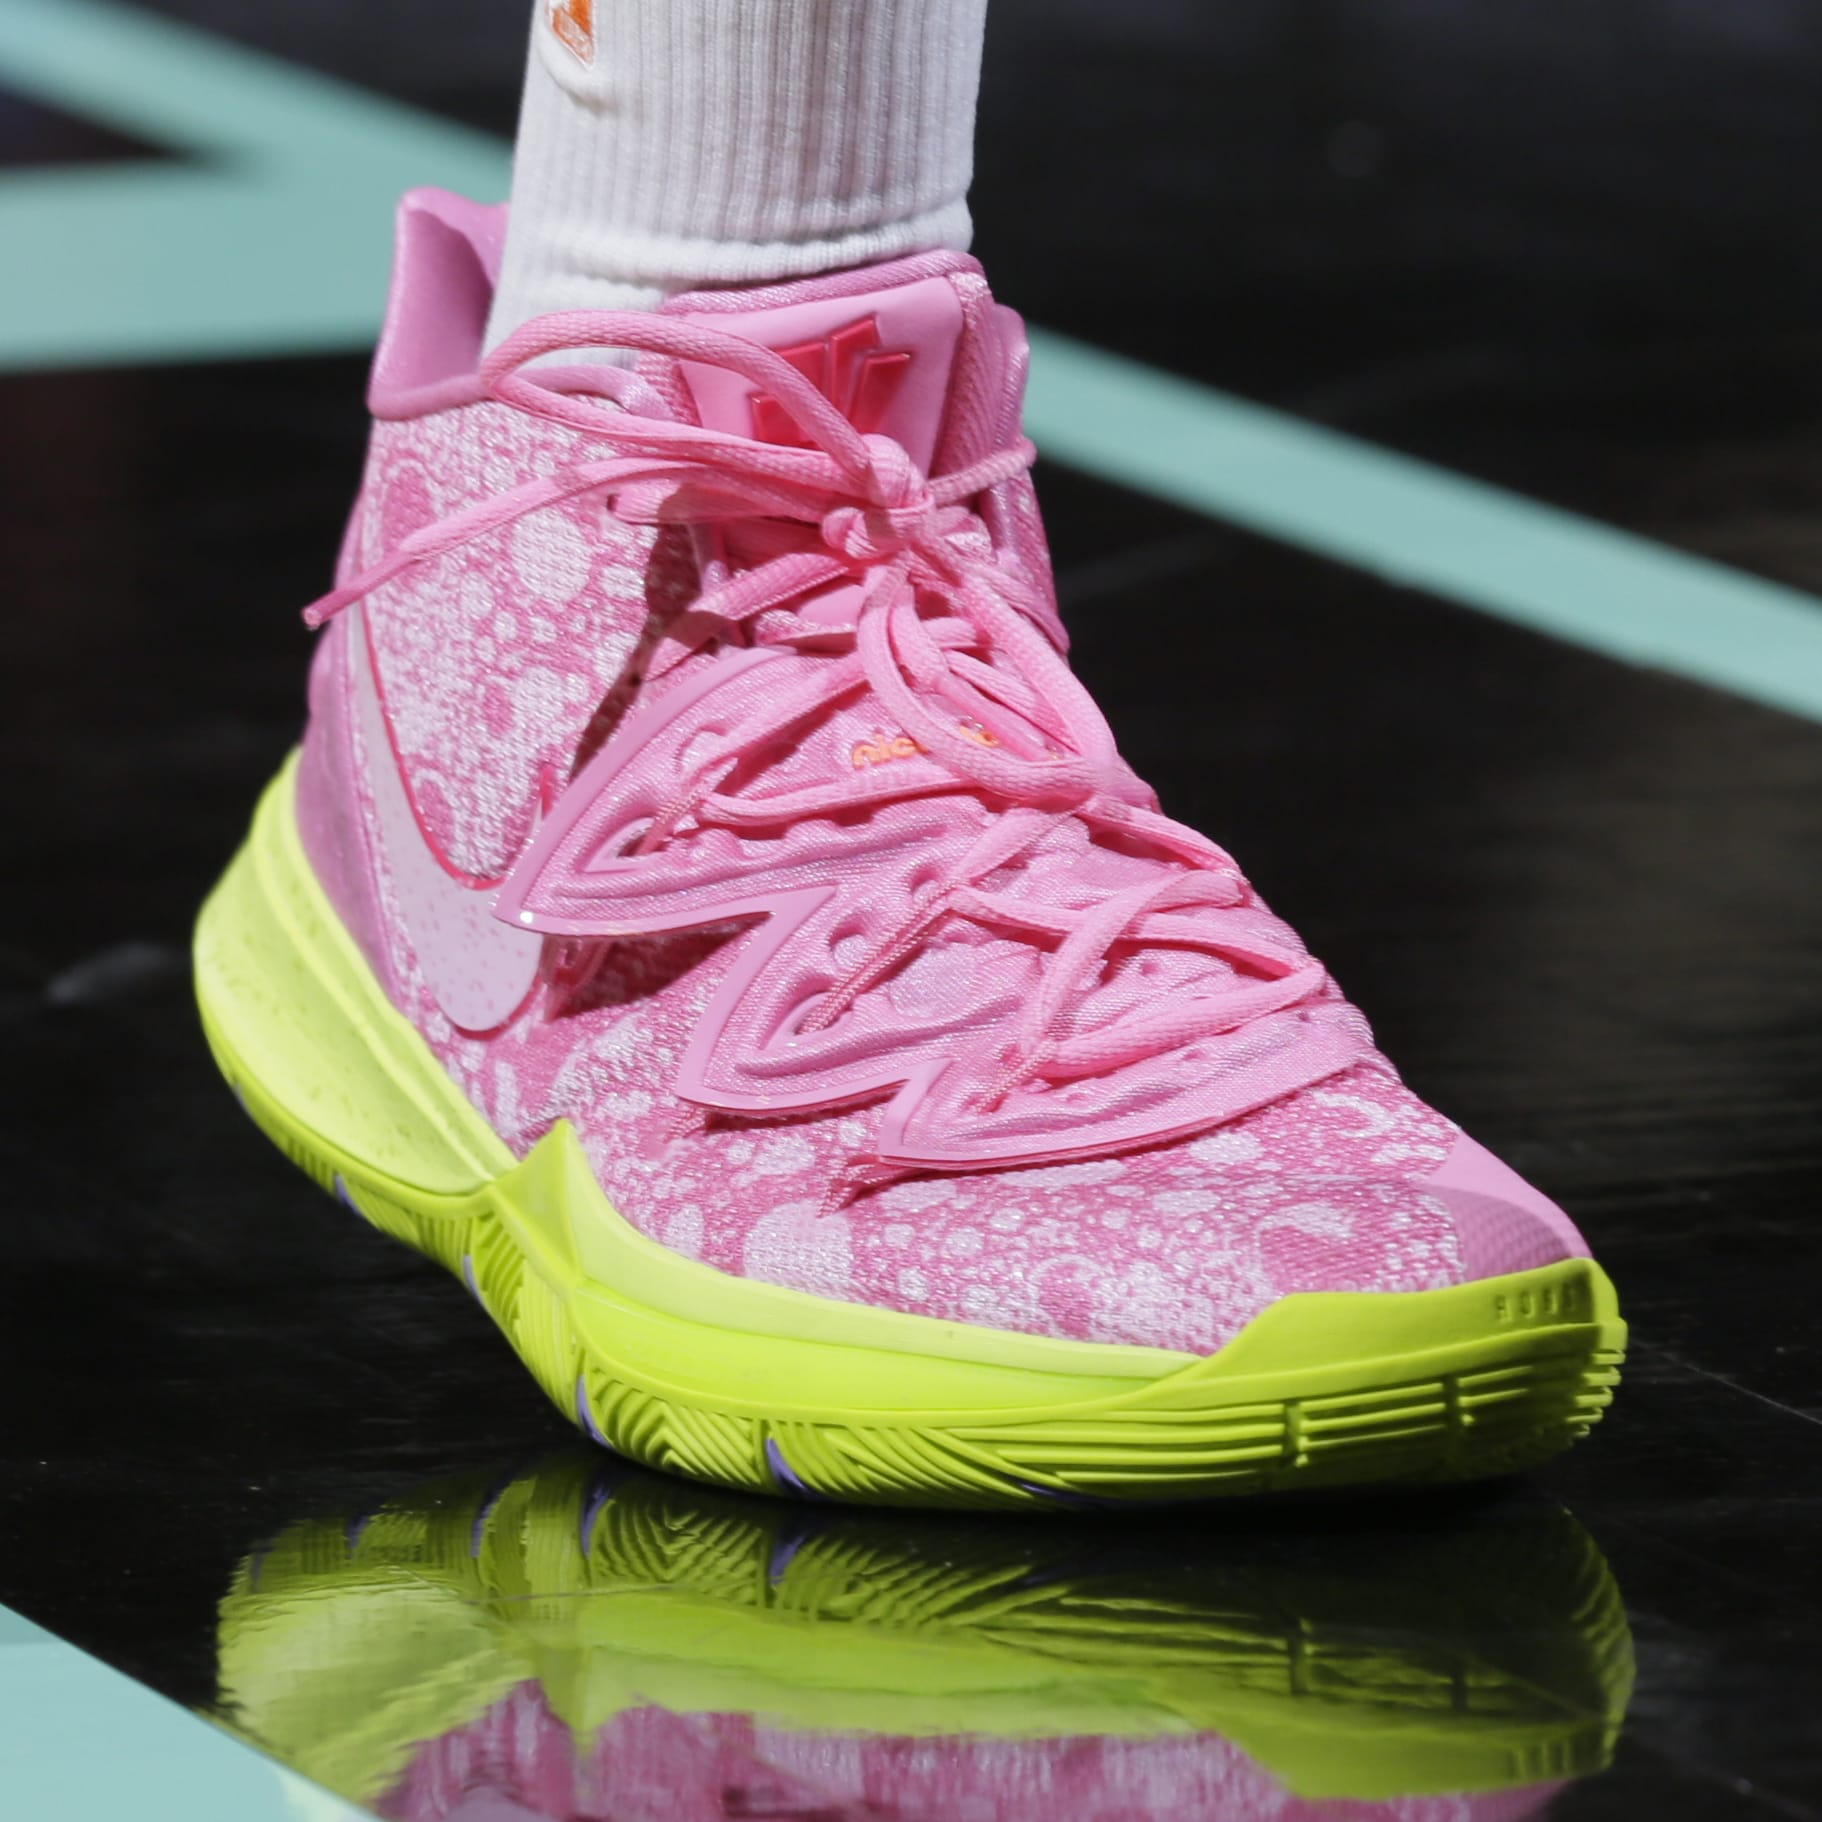 Nike Kyrie 5 Patrick Star Release Date Front